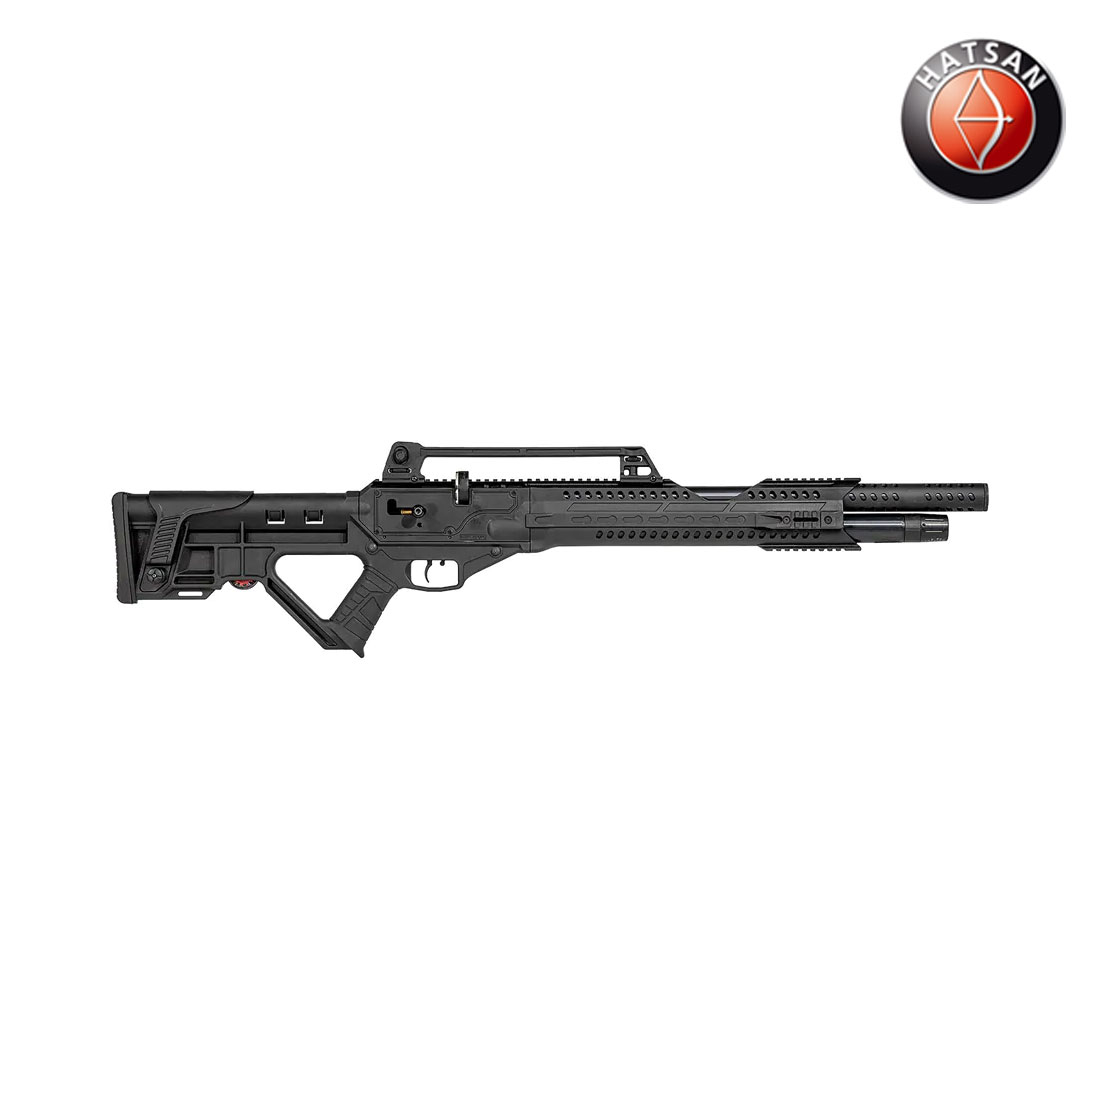 Hatsan Invader Auto PCP Air Rifle (.25 cal)- Adv Poly/Tactical Stock